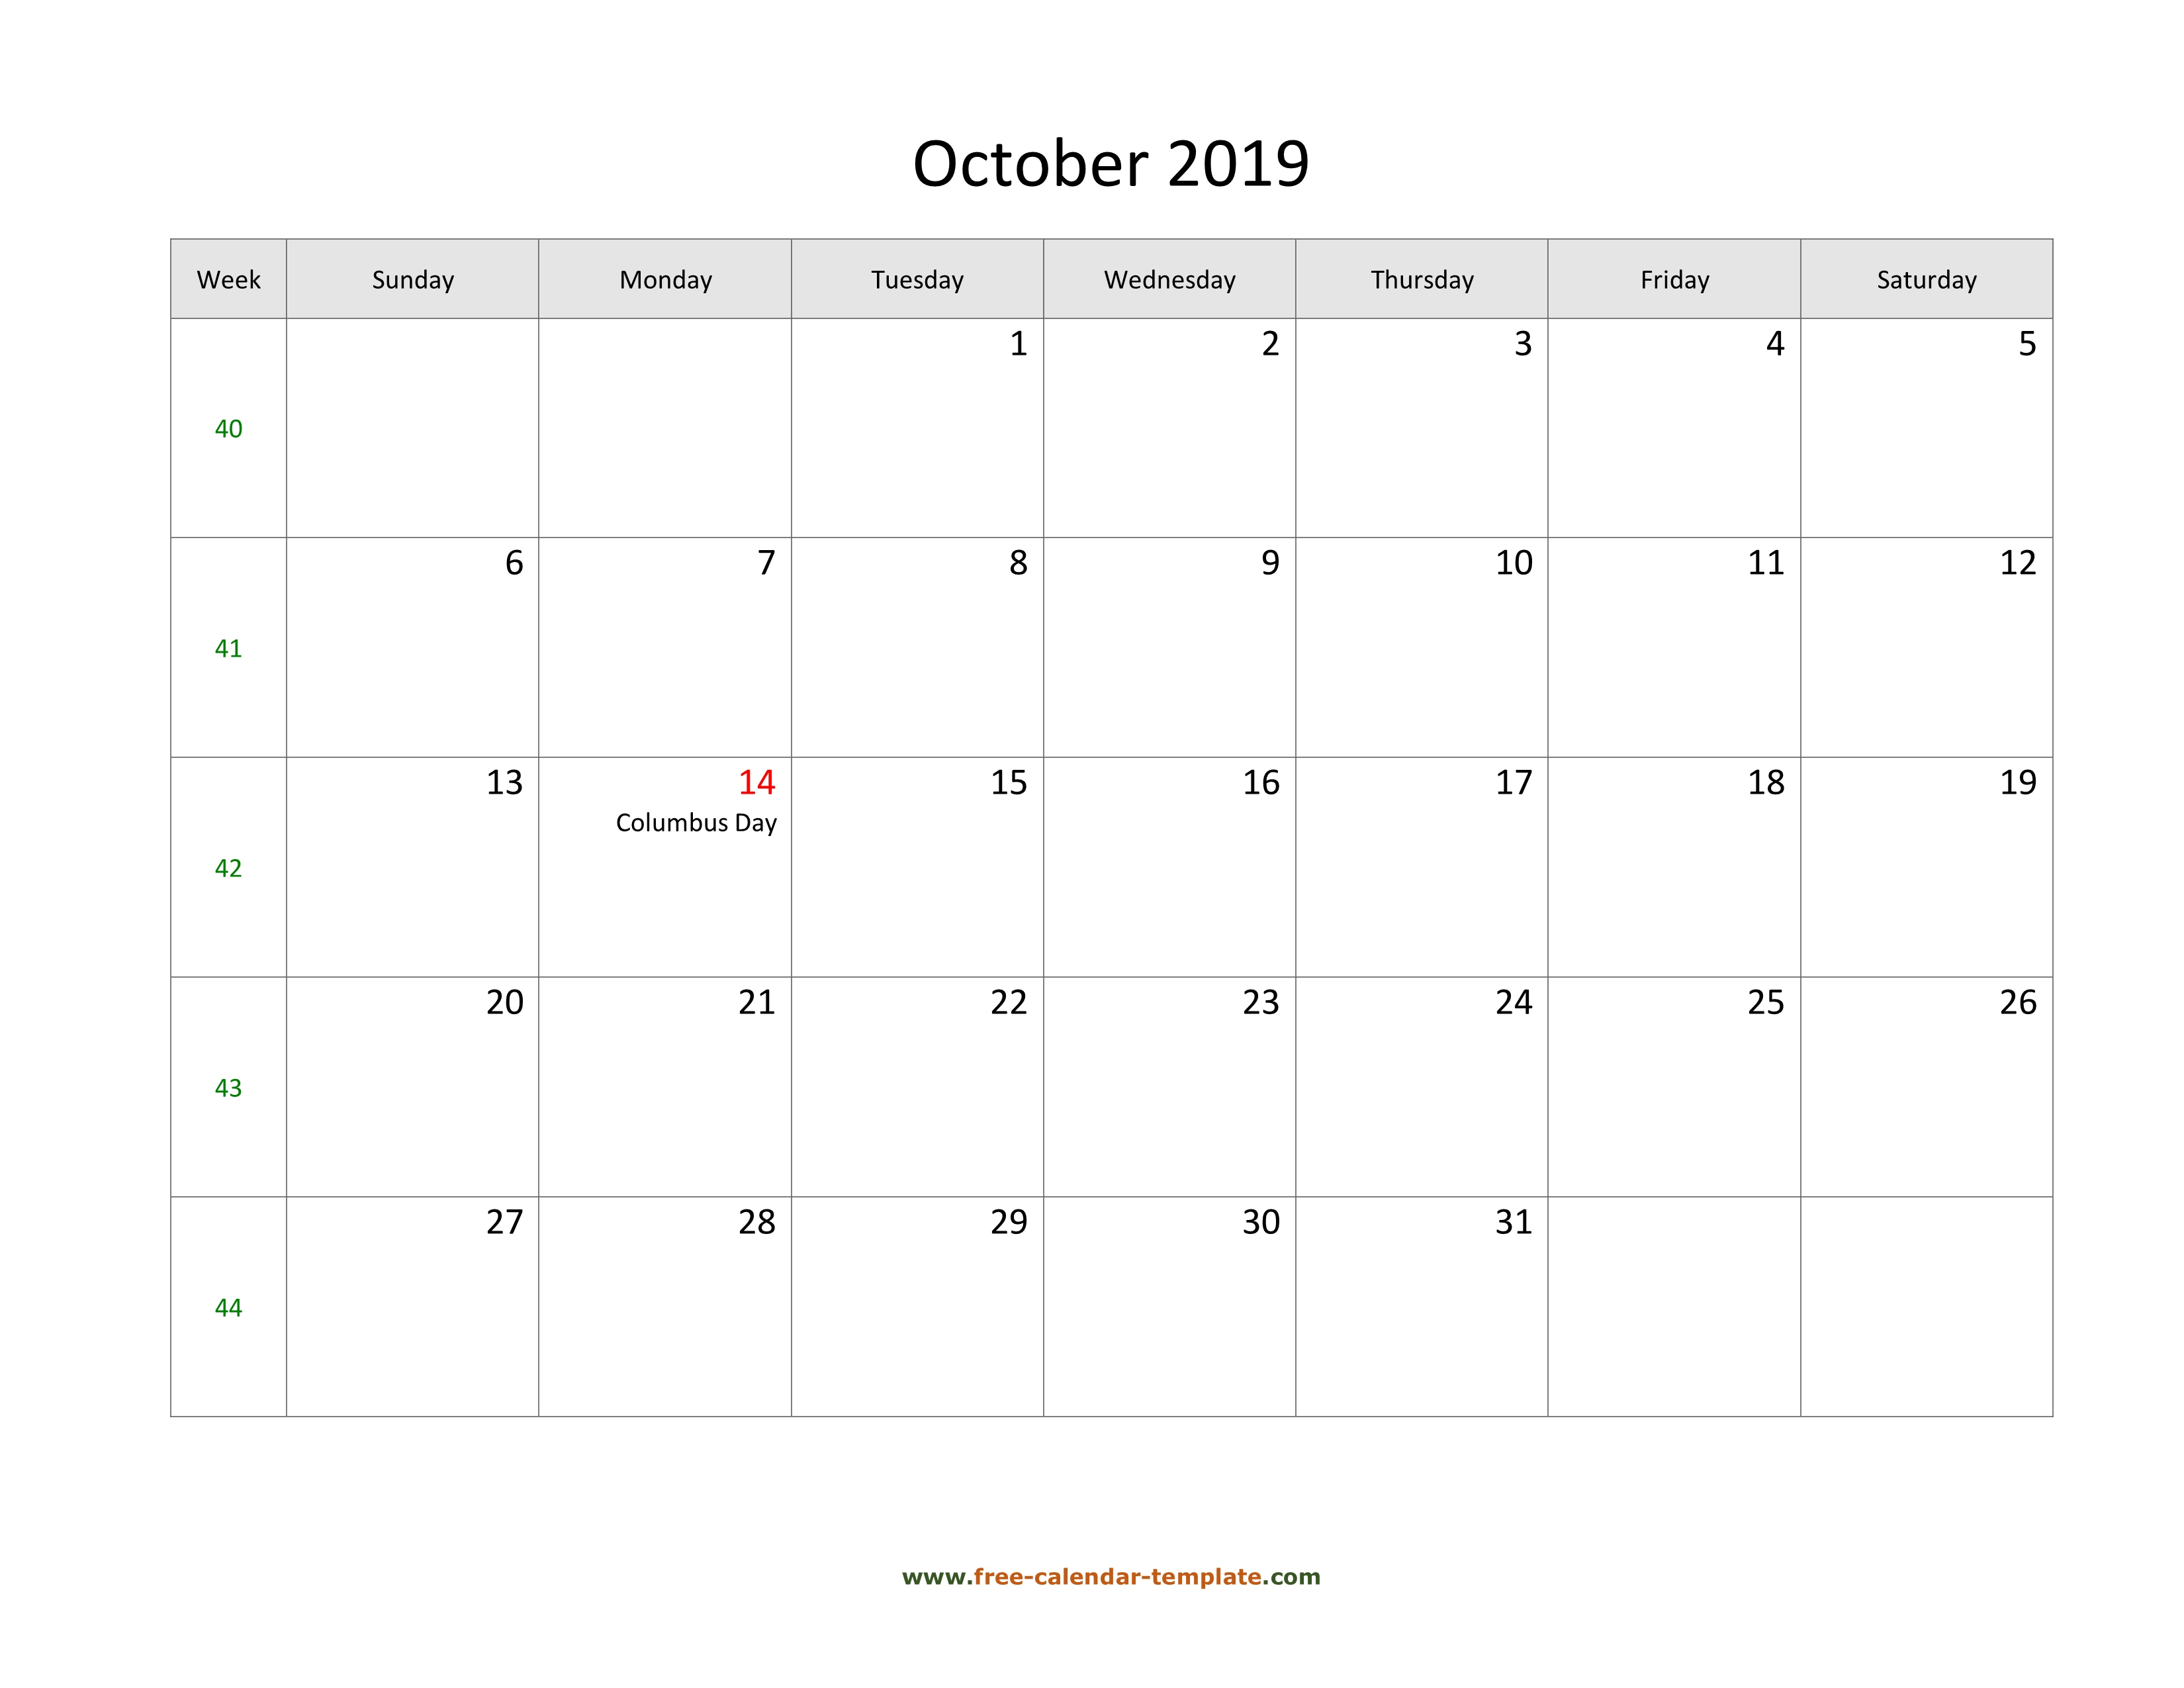 Free 2019 Calendar Template Word from www.free-calendar-template.com